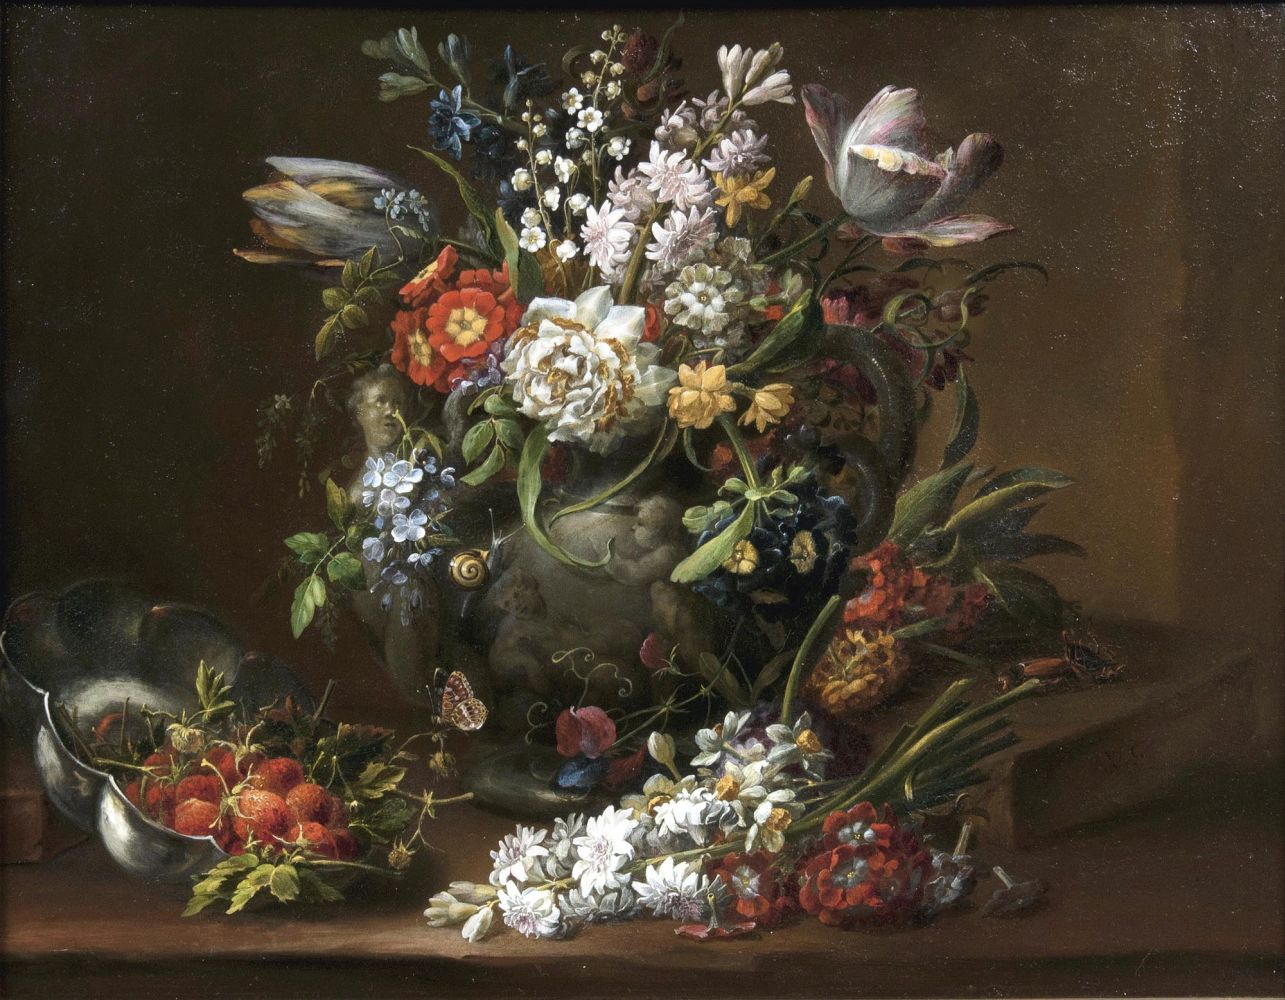 Üppiges Bouquet in einer Schlangenhenkelvase